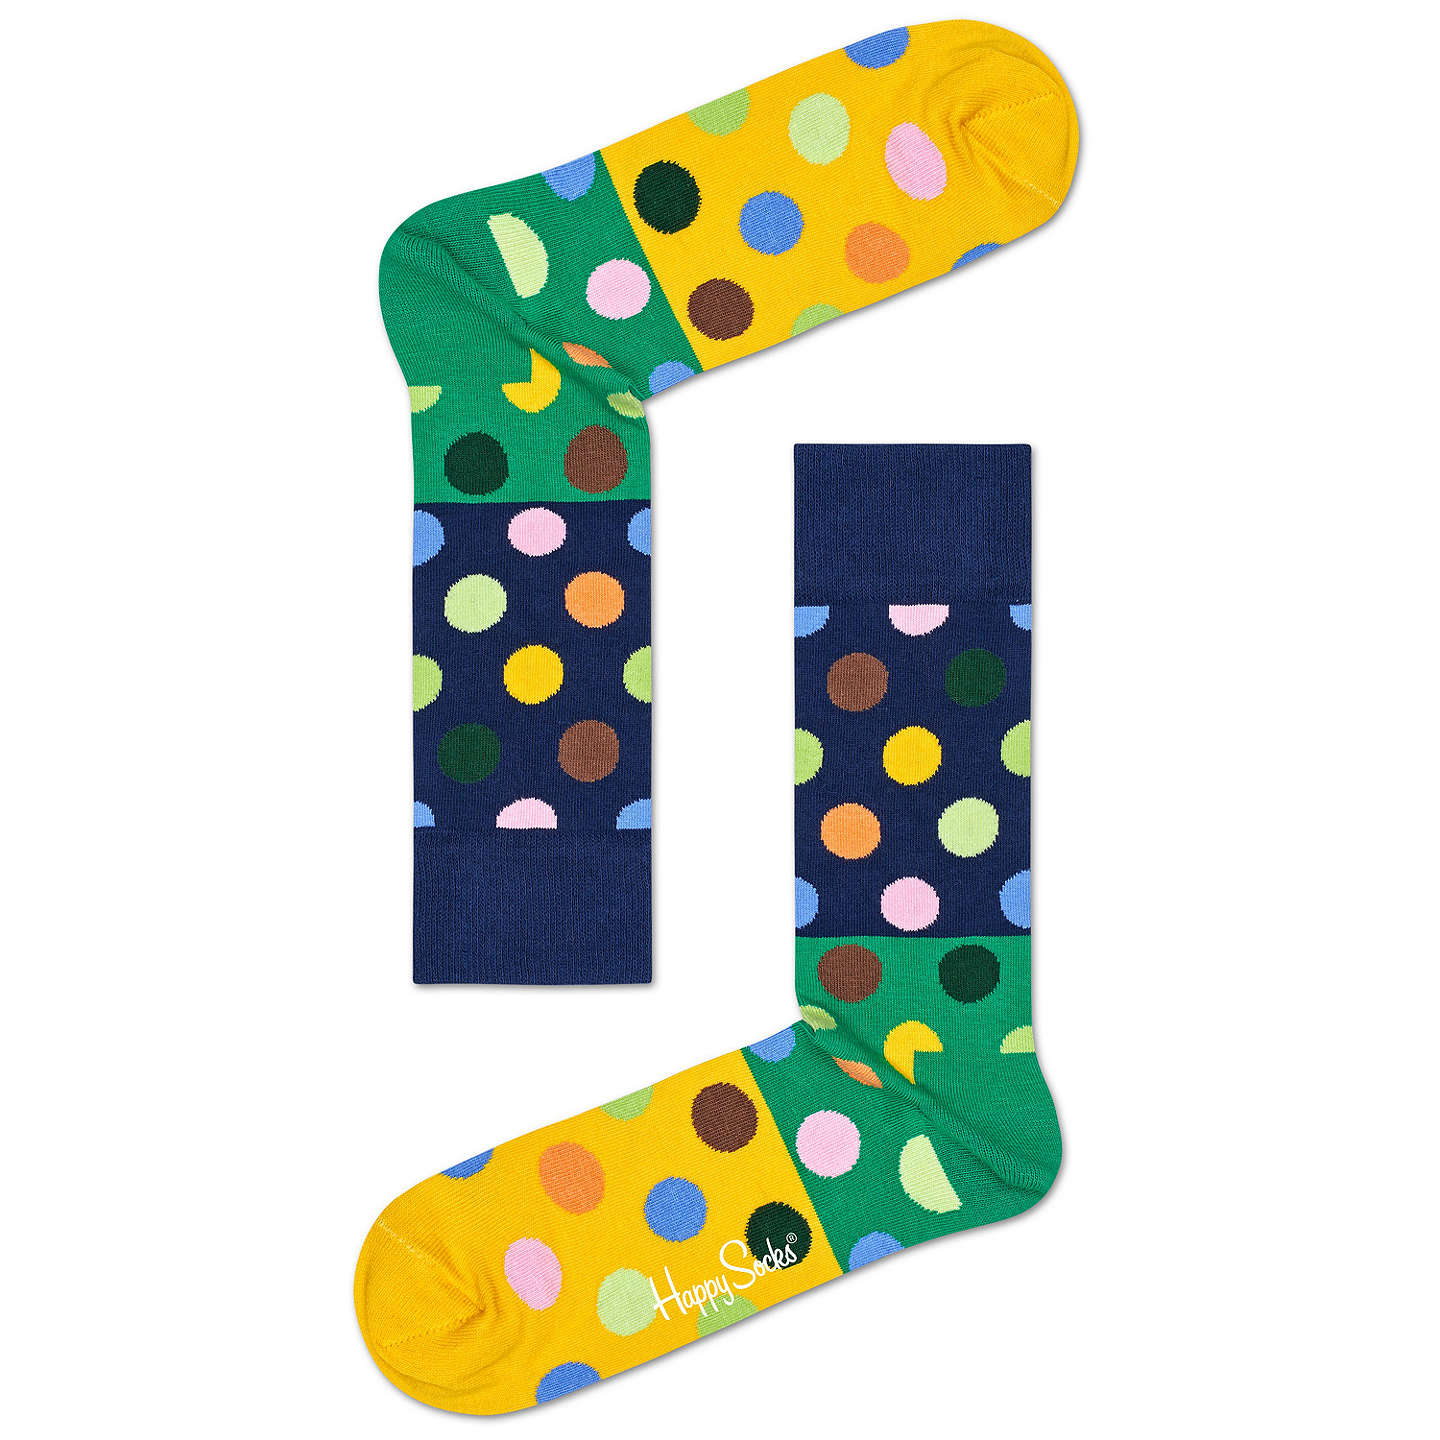 BuyHappy Socks Big Dot Socks, One Size, Green/Navy Online at johnlewis.com